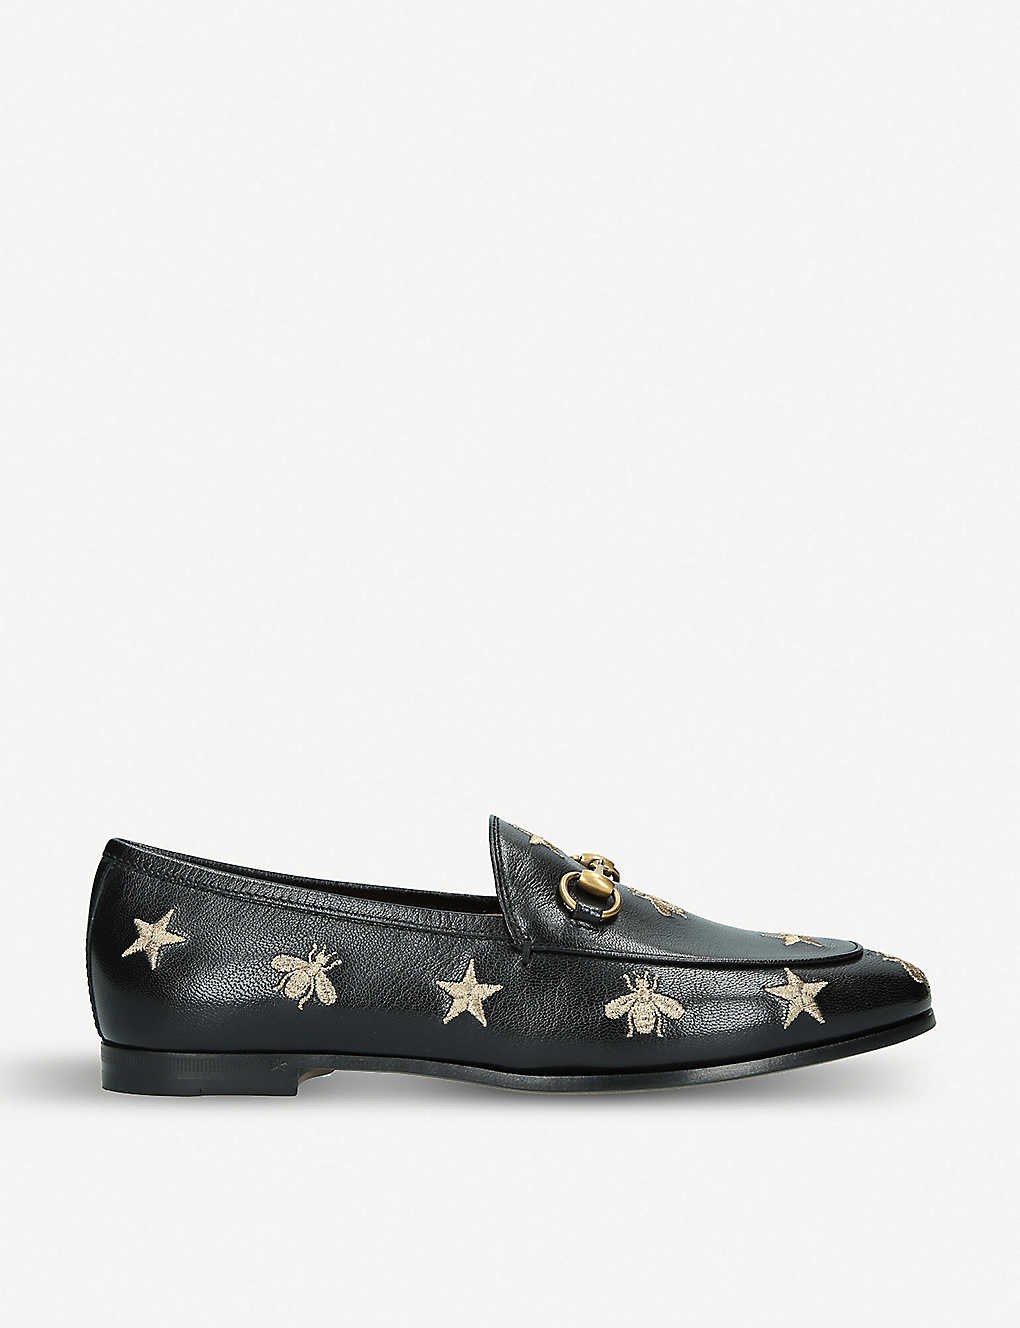 a3947d509c Jordaan embroidered leather loafers